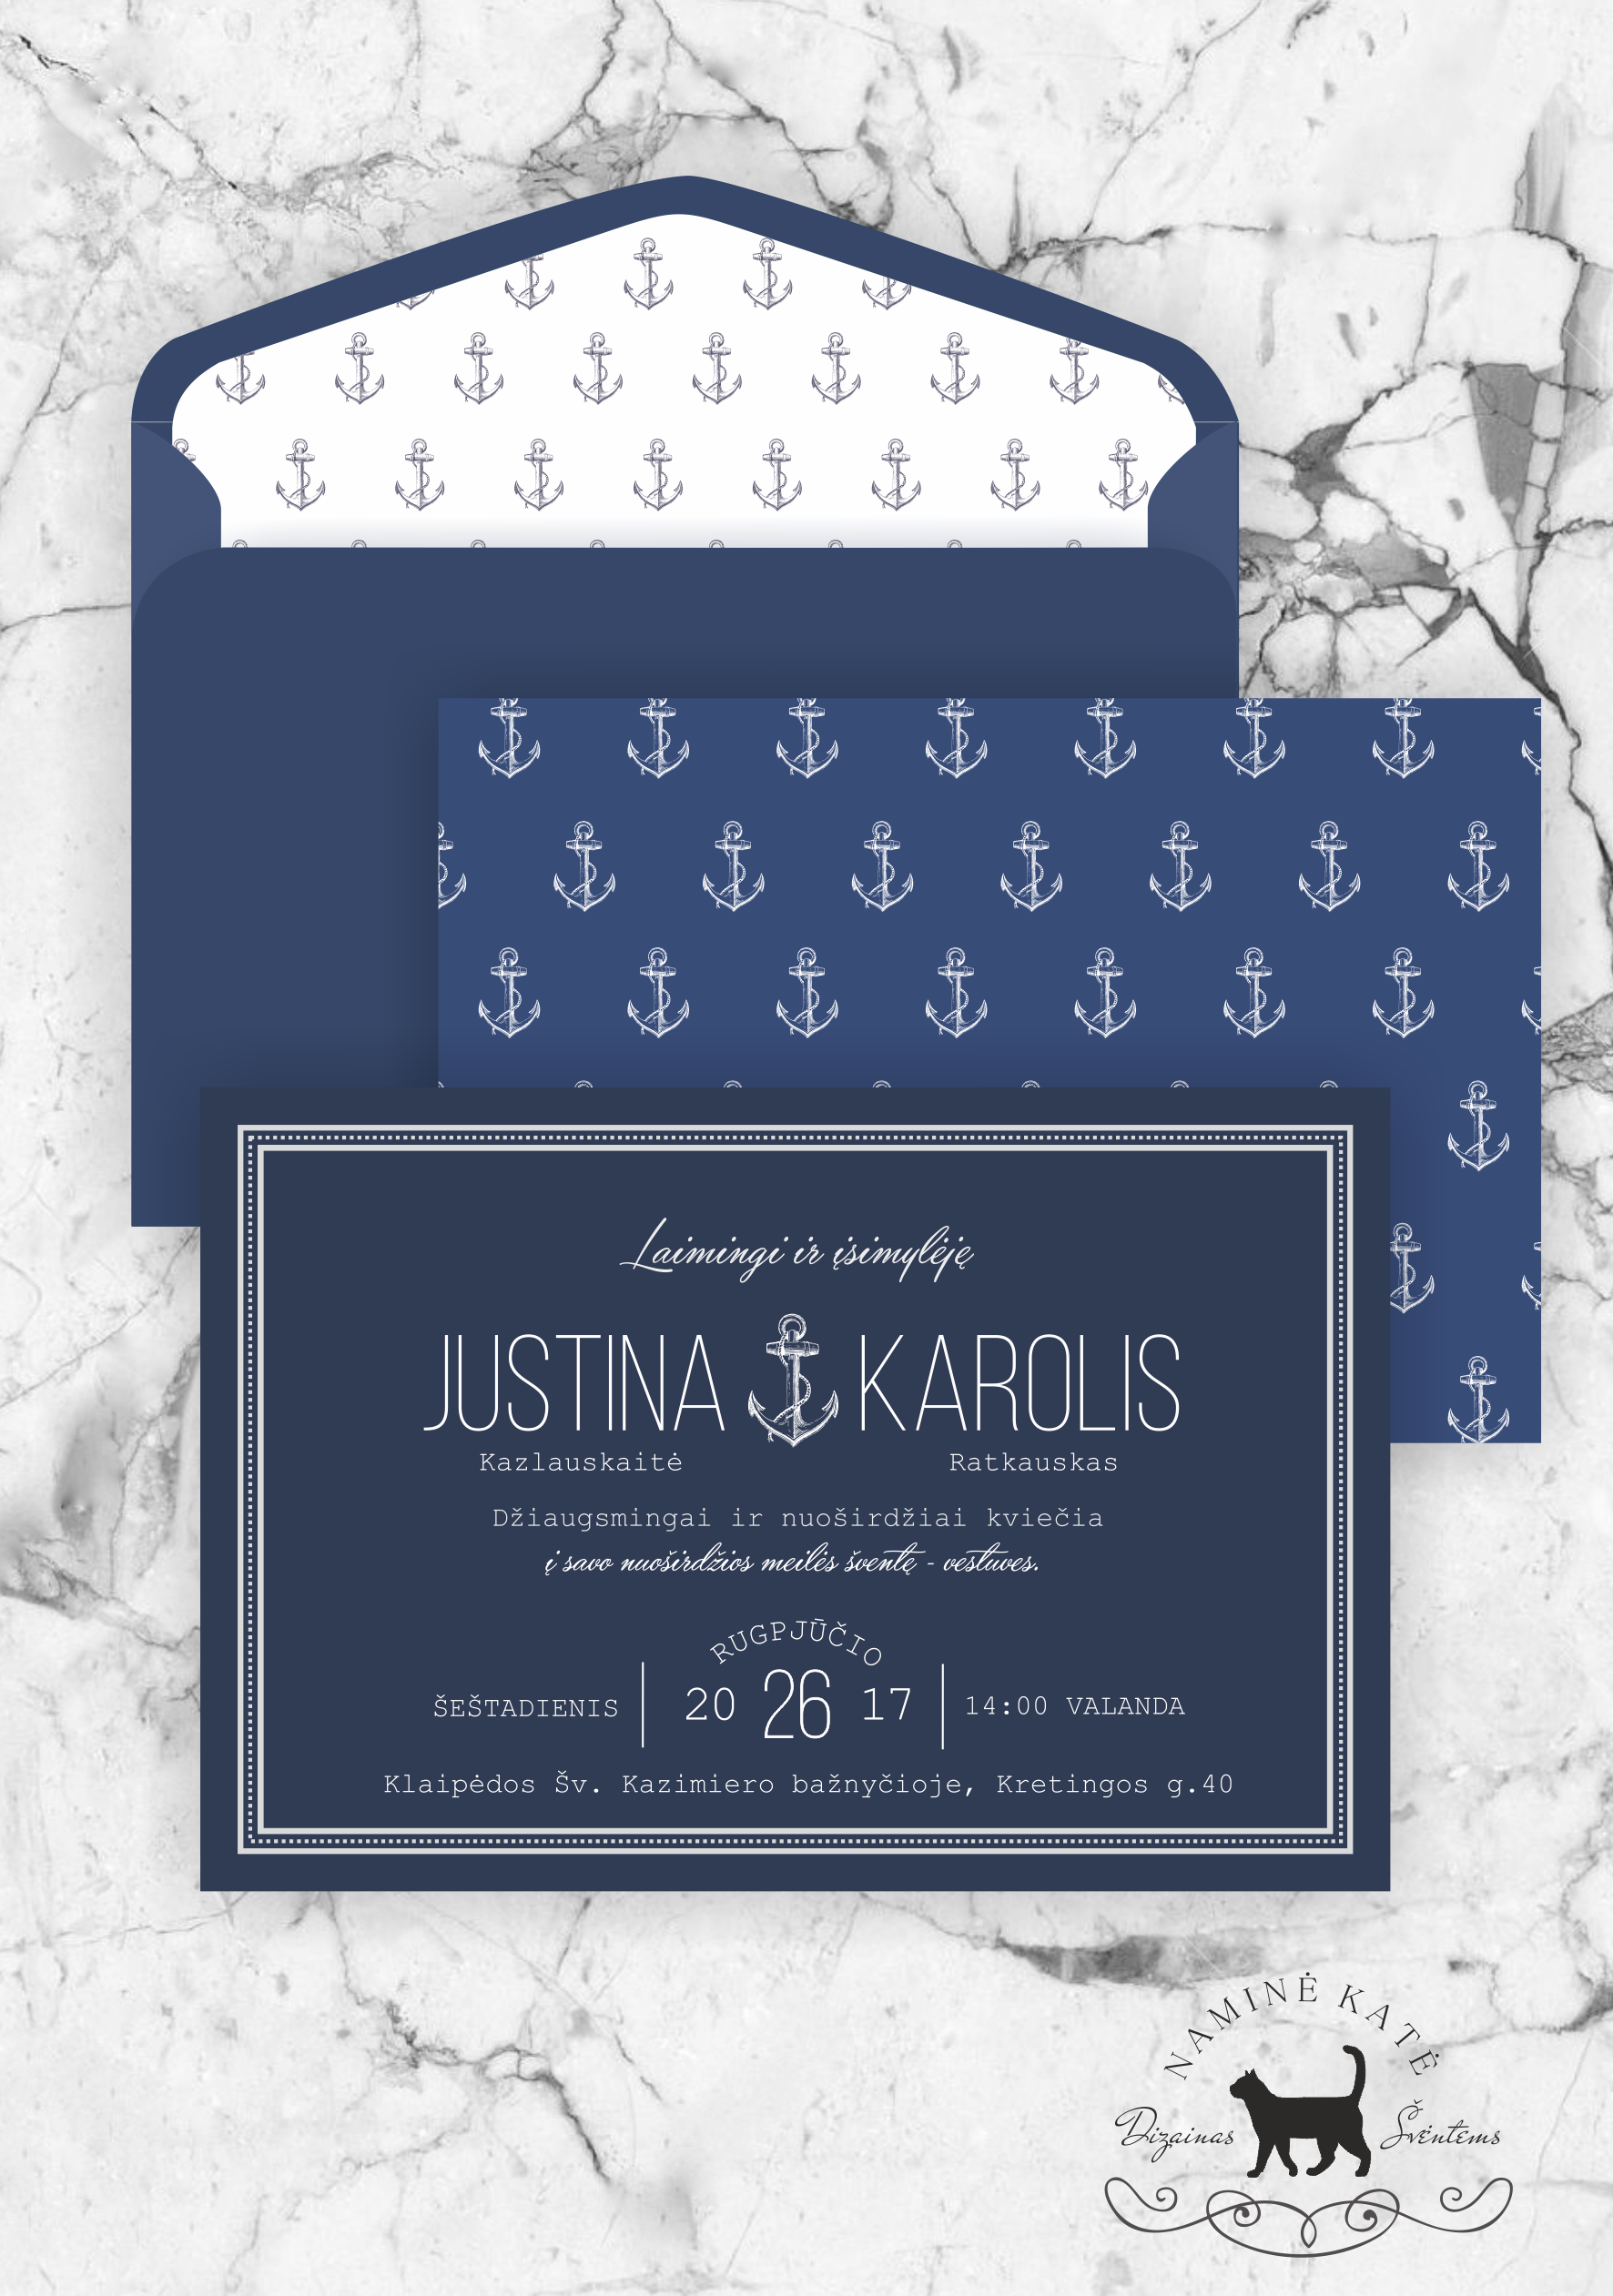 Marinistic Style Invitation Solid, Romantic Invitation For Weddings On The